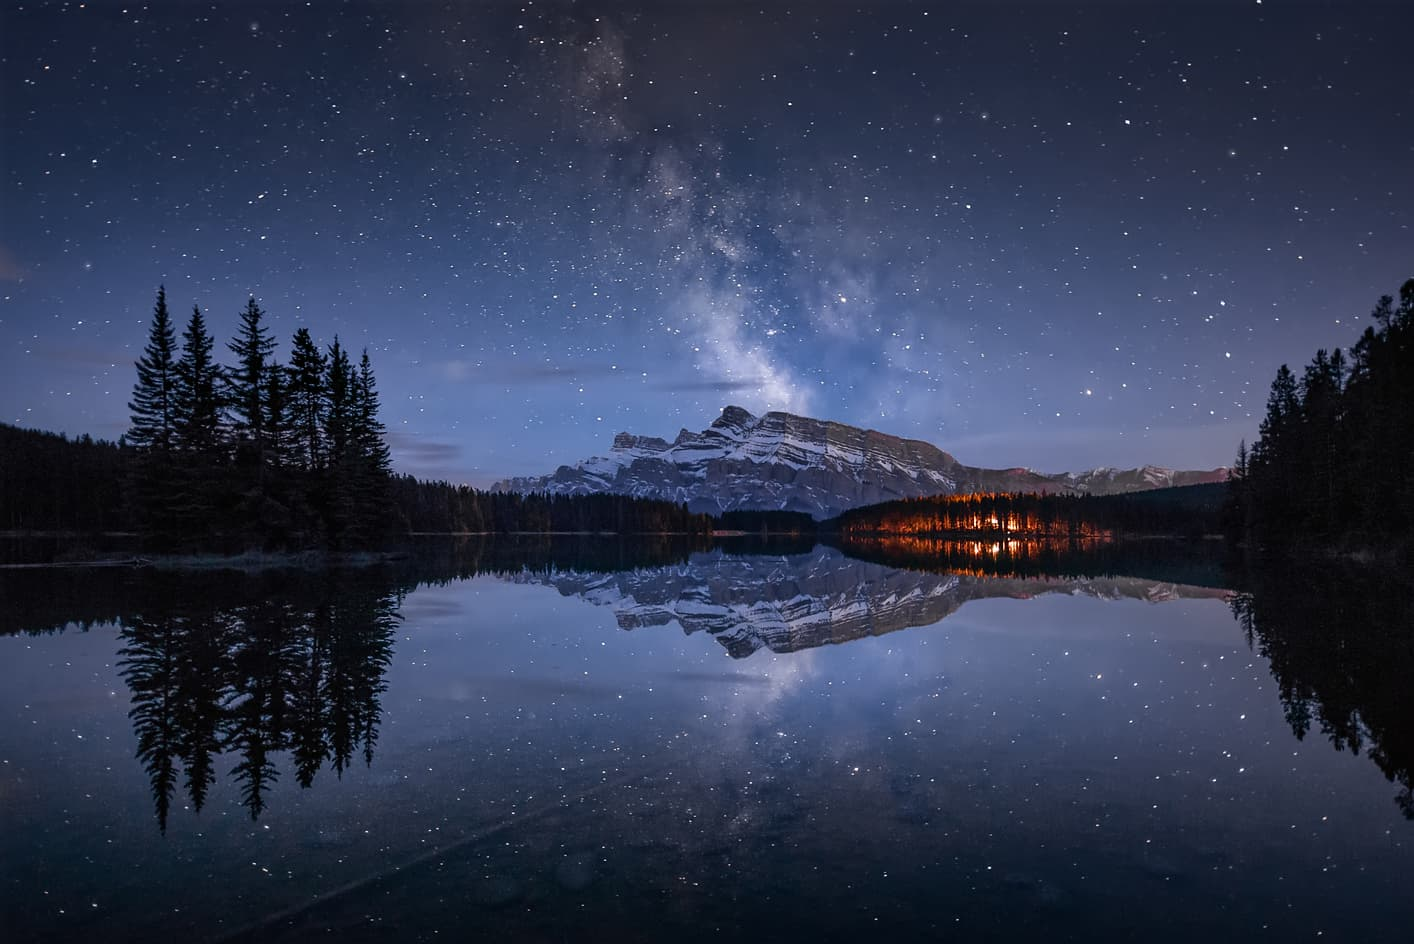 Milky way two jack lake banff canada alberta mirror pines sky photography night banff lo que no te puedes perder de las montañas rocosas de canada